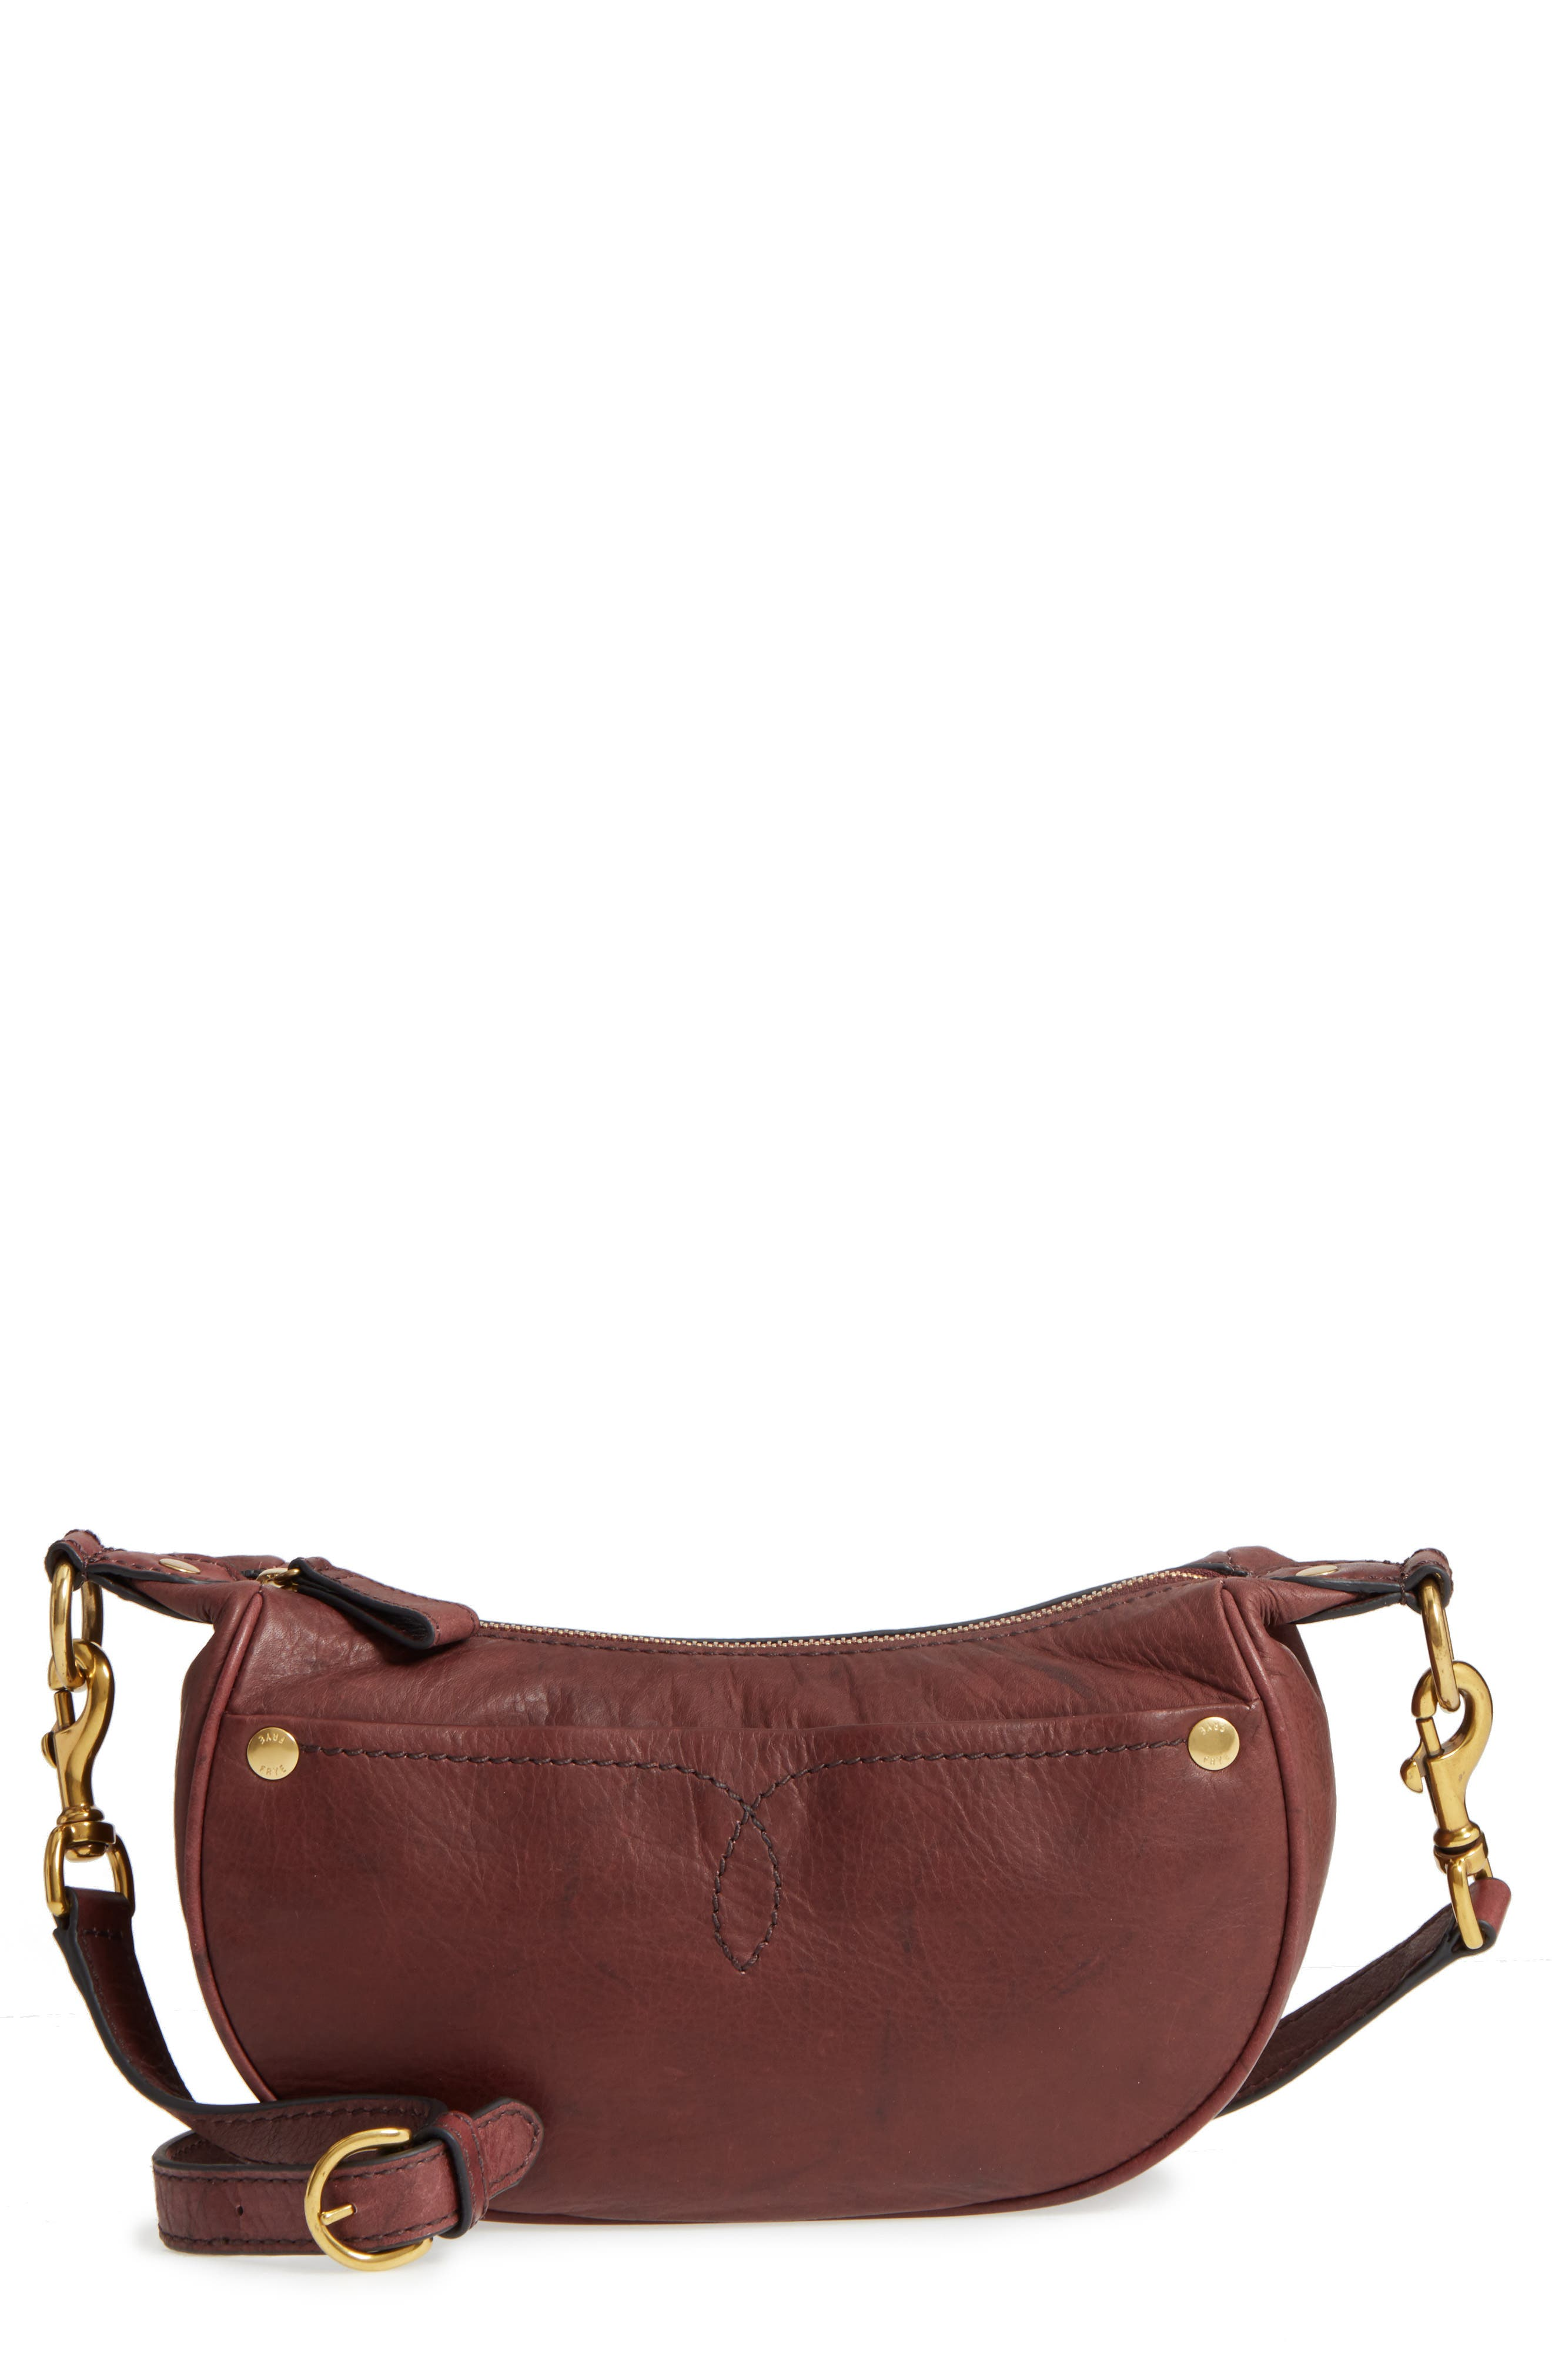 Small Campus Leather Crossbody Bag,                             Main thumbnail 1, color,                             210